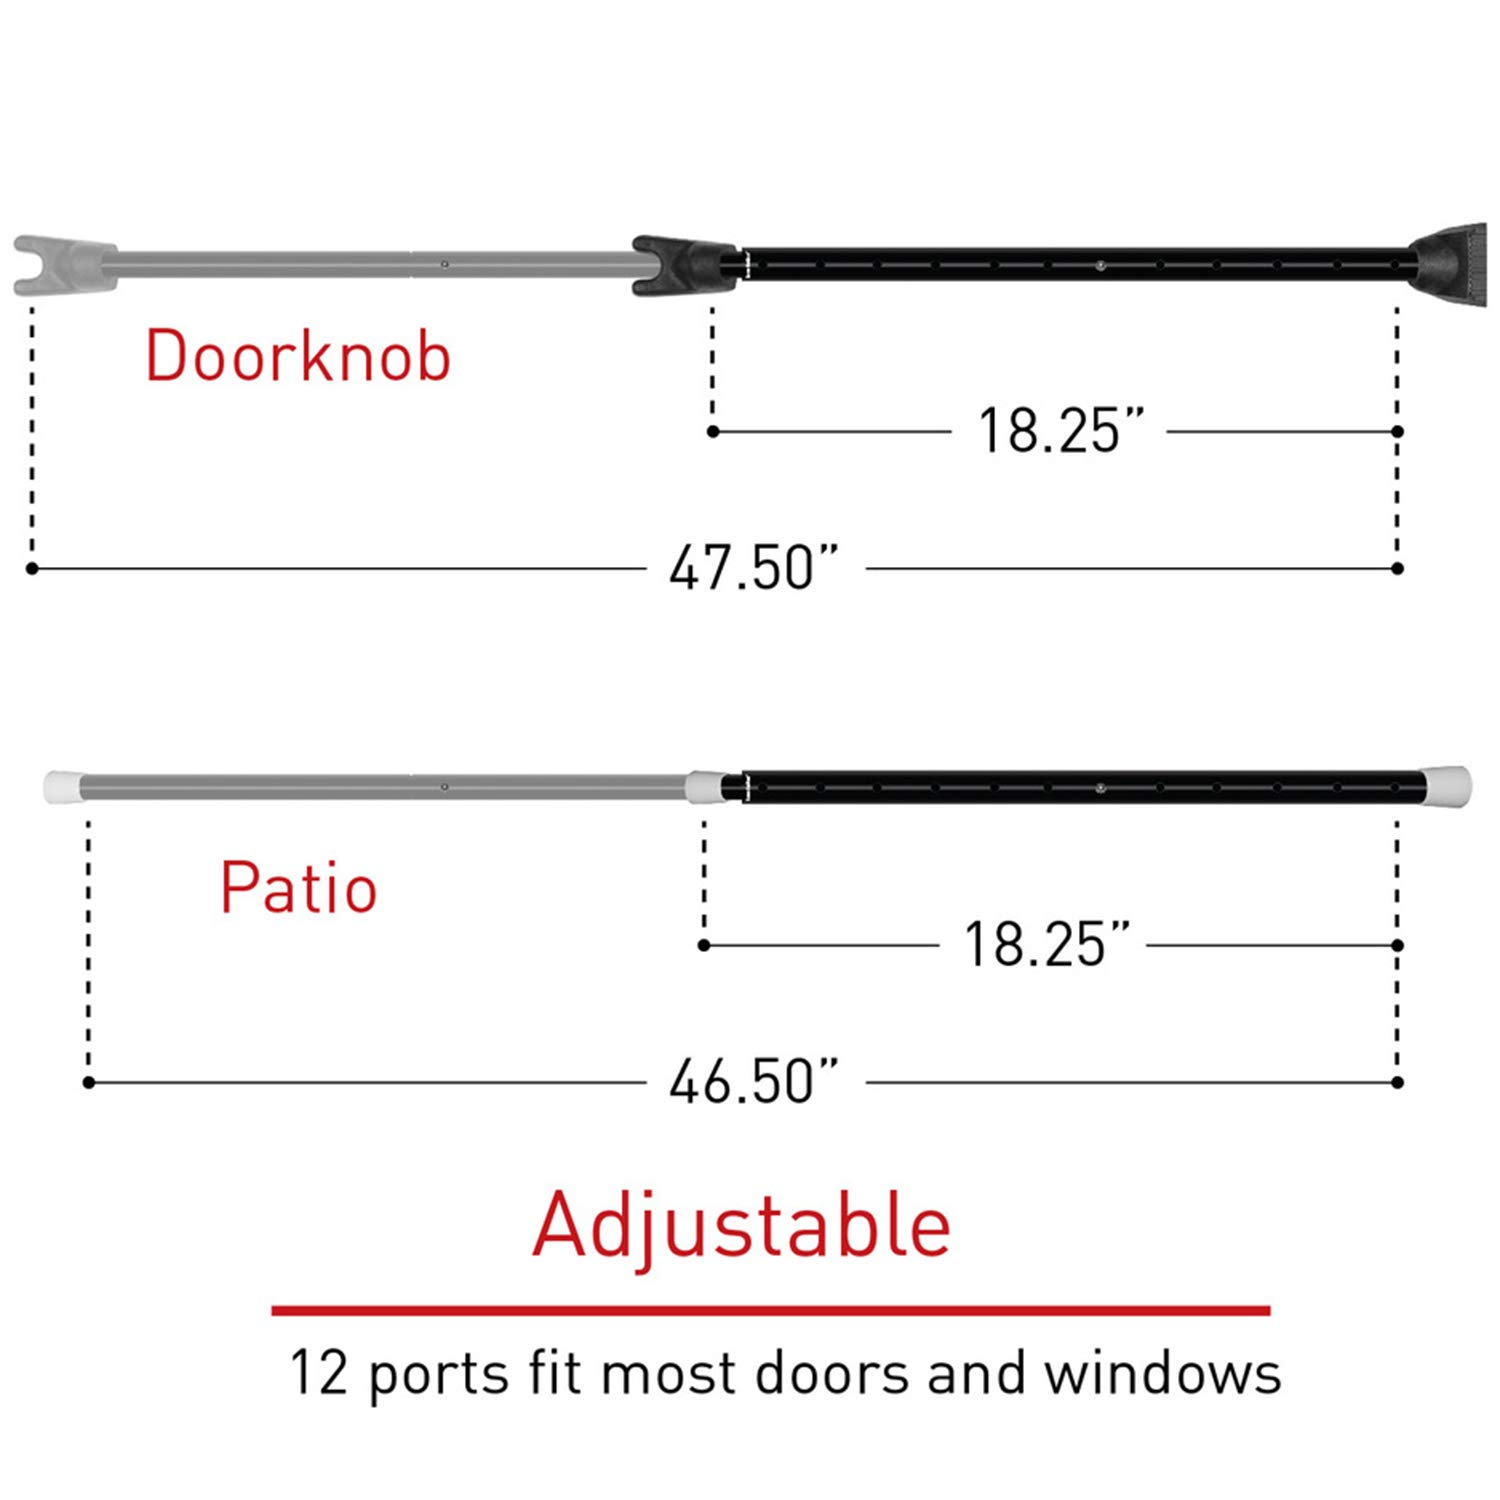 Amazon.com: Securityman 2-in-1 Adjustable Door Knob Jammer & Sliding Patio Door Security Bar - Constructed of High Grade Iron (Black): Baby